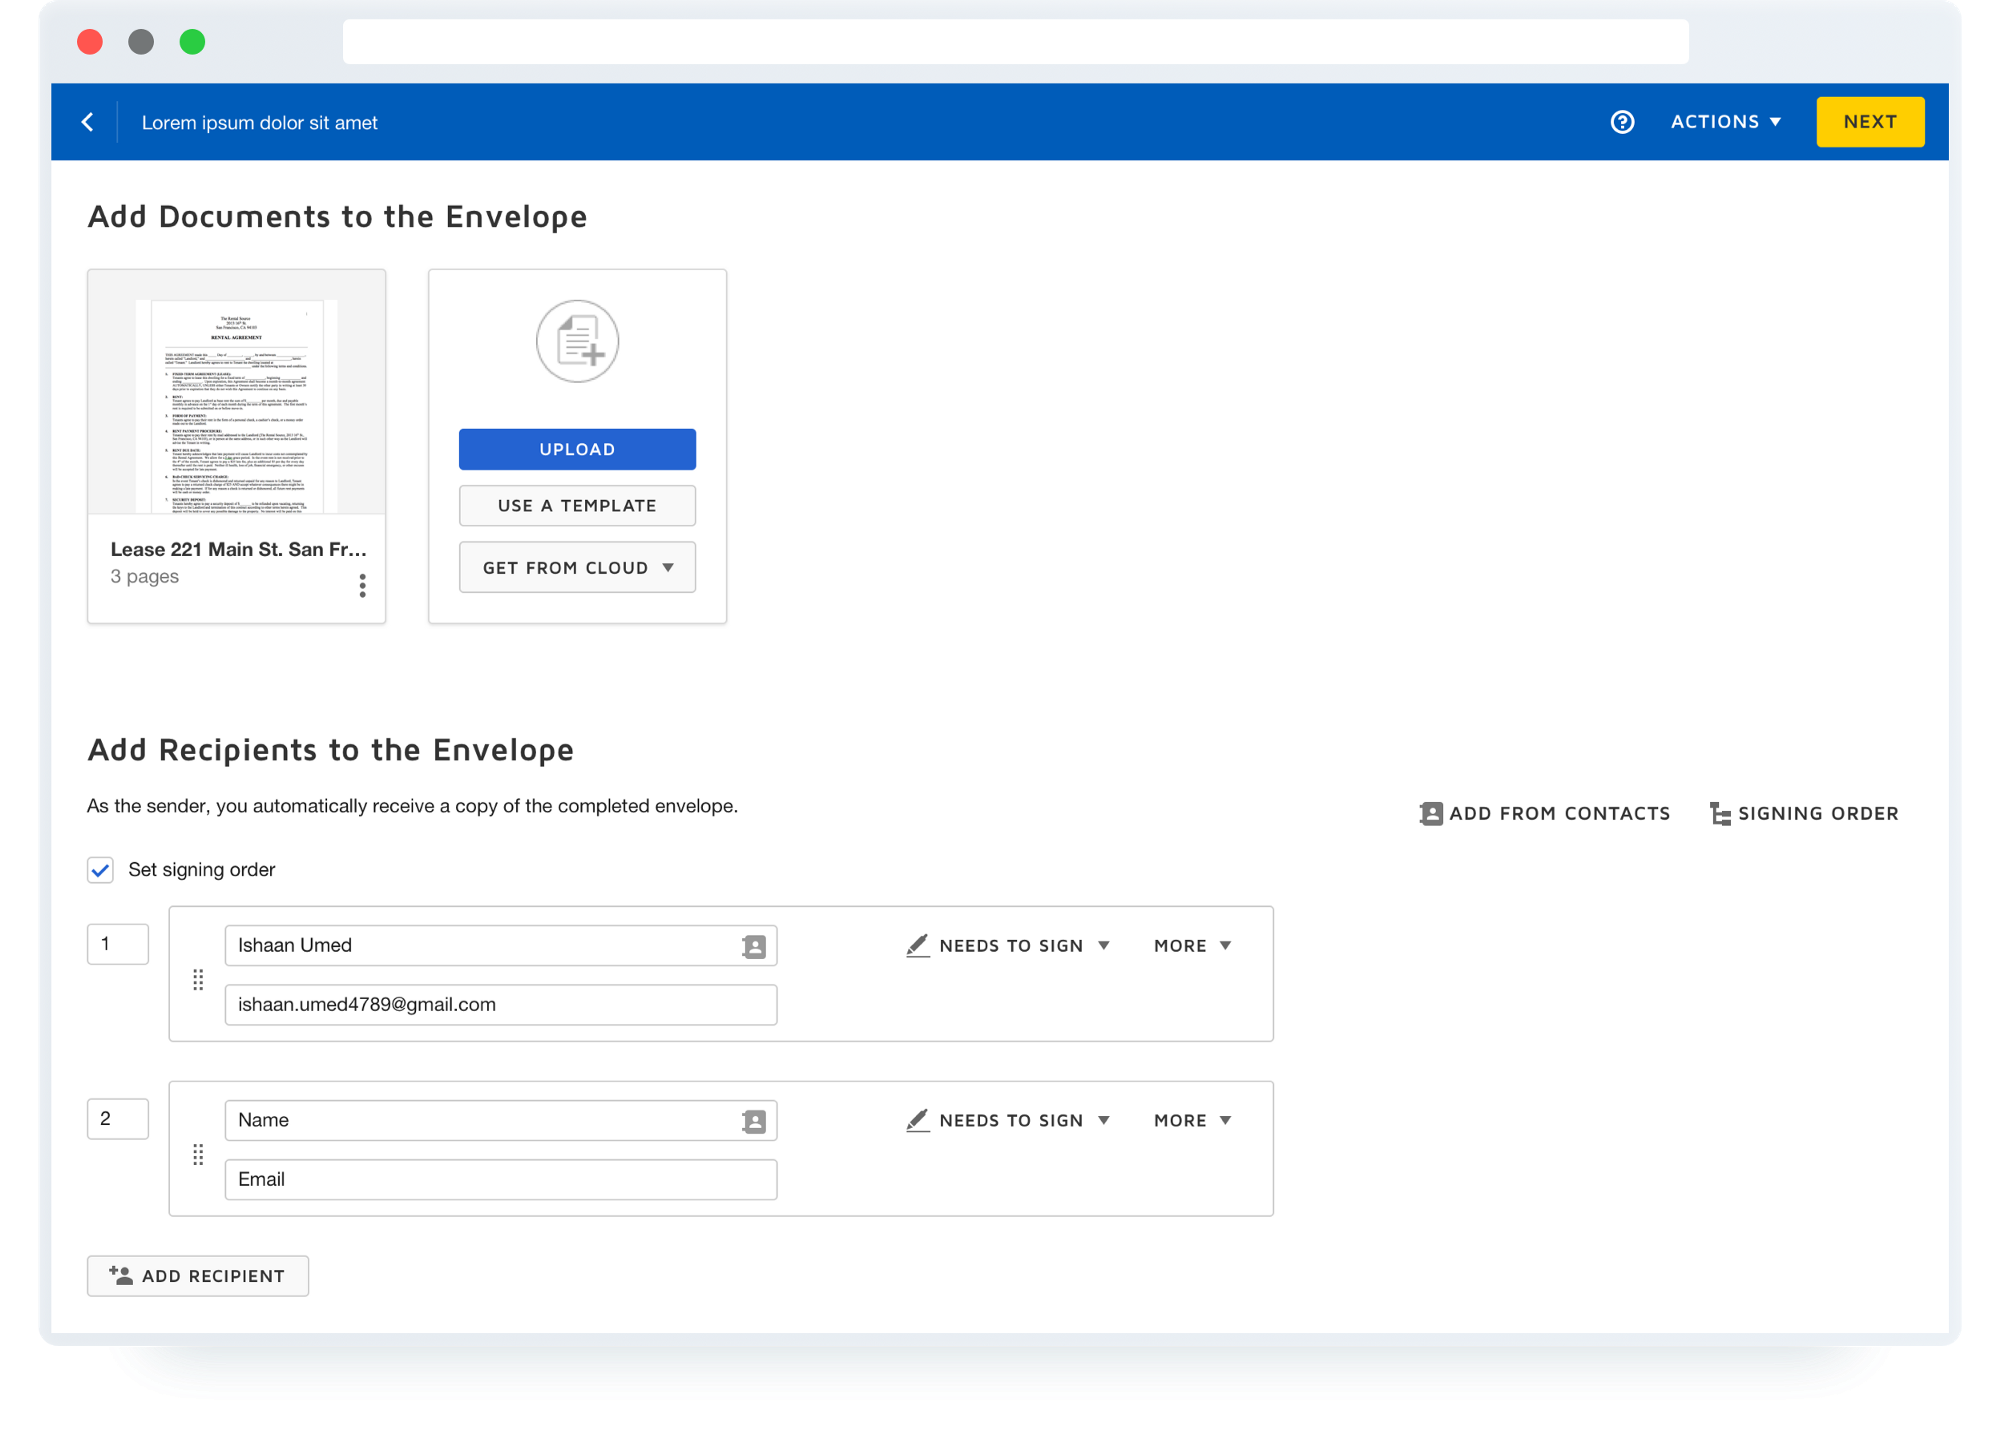 DocuSign's Send for Signature page uses page structure to help users navigate.